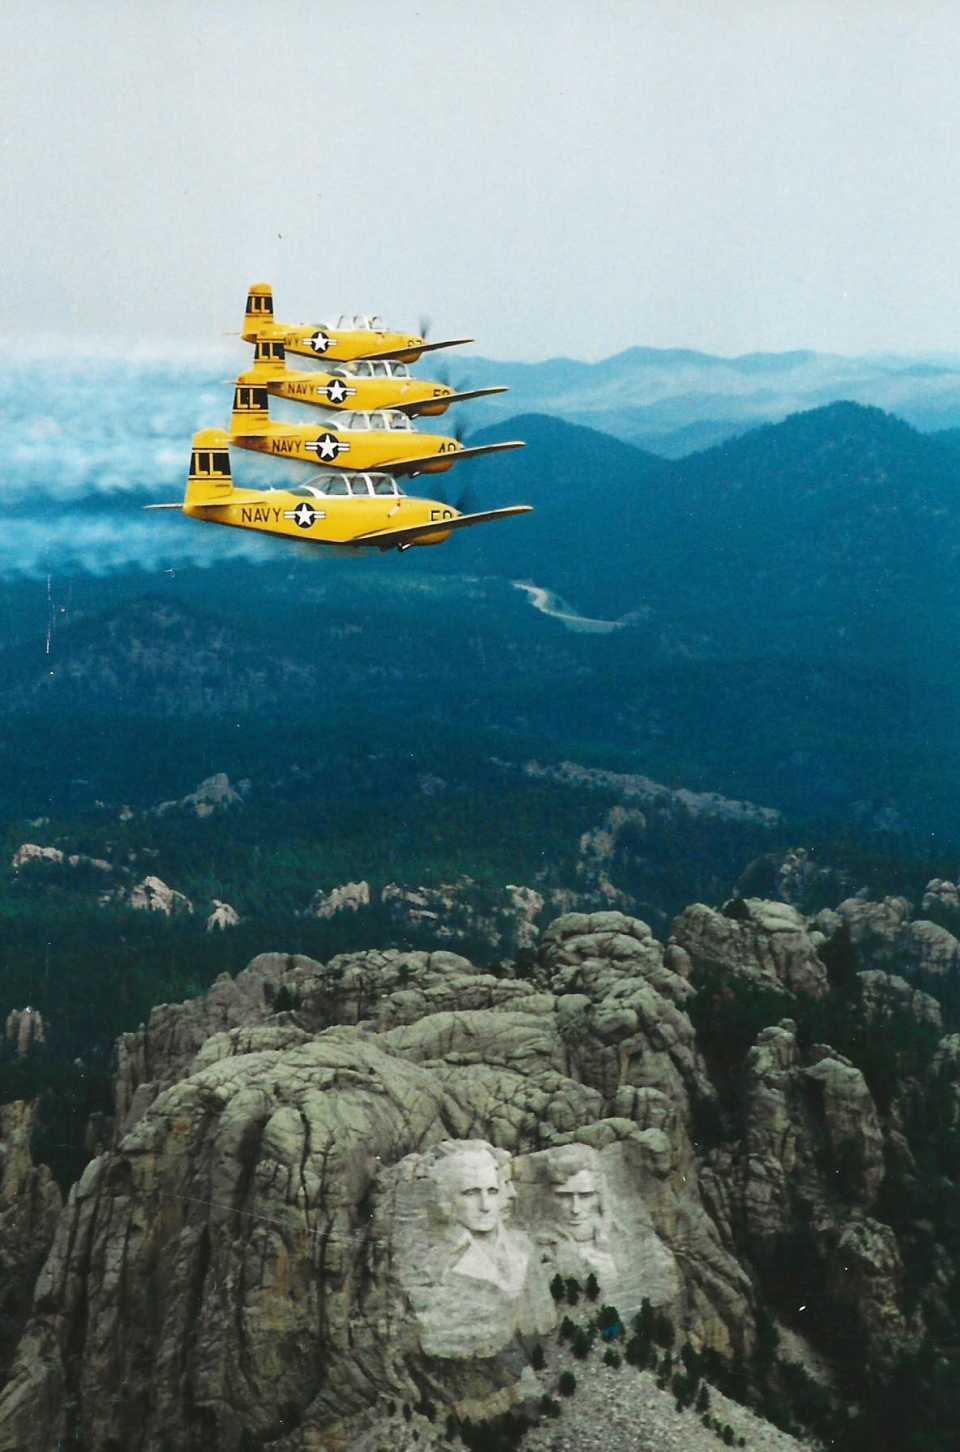 Four Ship at Mt. Rushmore